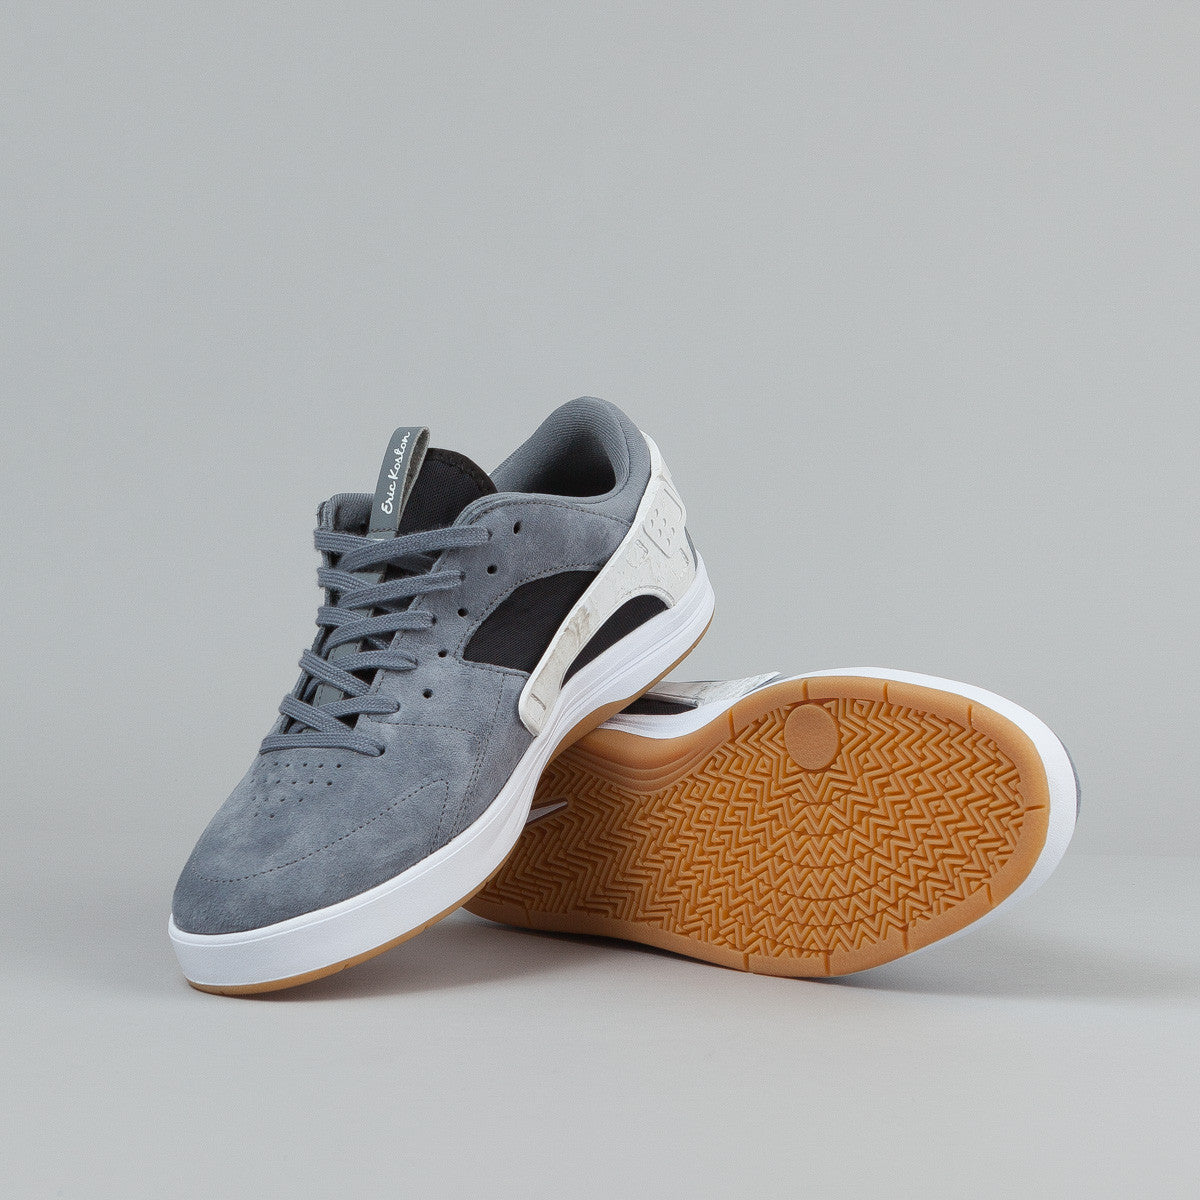 Nike SB Eric Koston Huarache Shoes - Cool Grey / Black - White - Gum